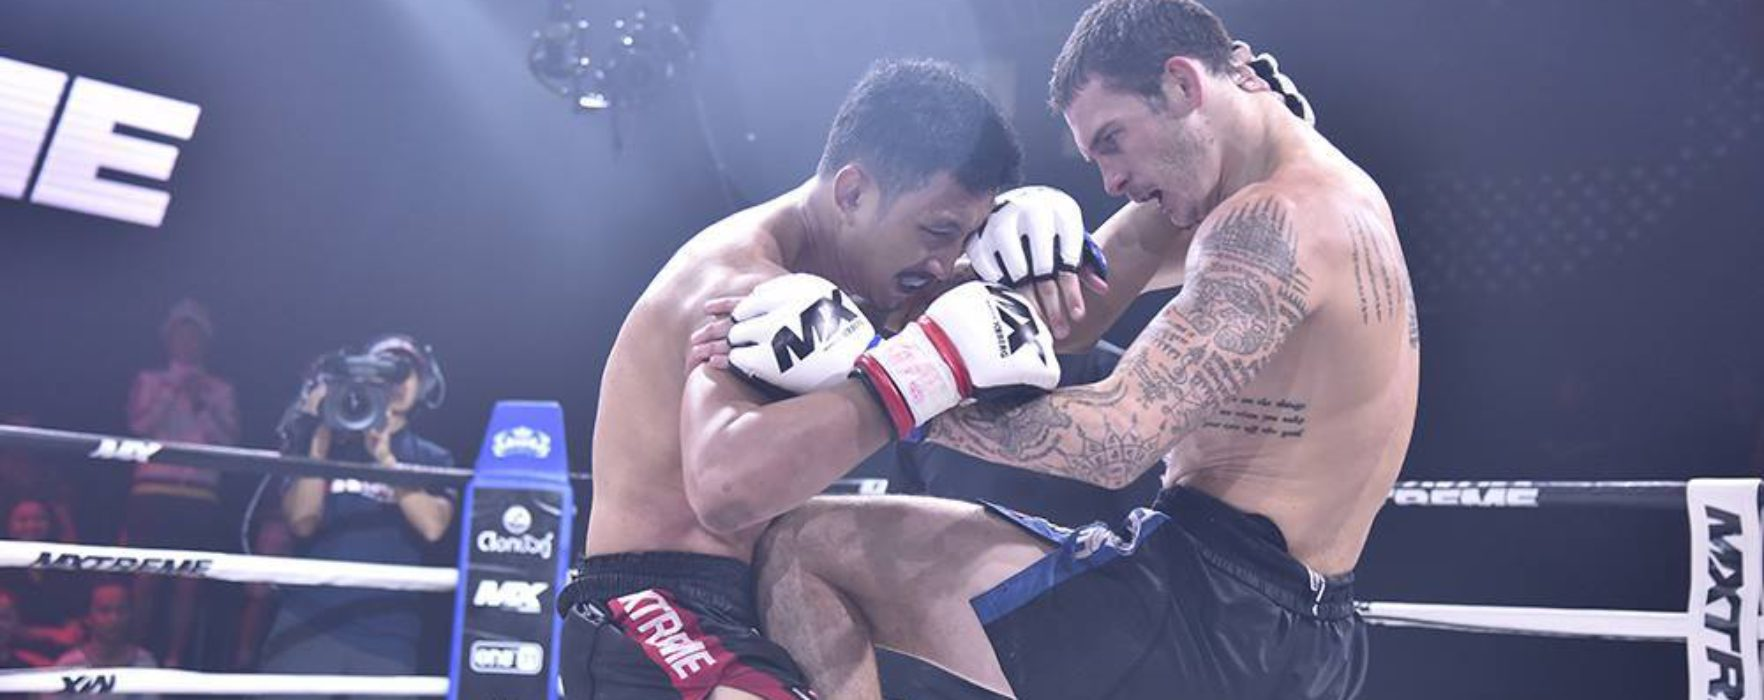 Video: Pakorn headlines MuayXtreme event – 23/12/2016